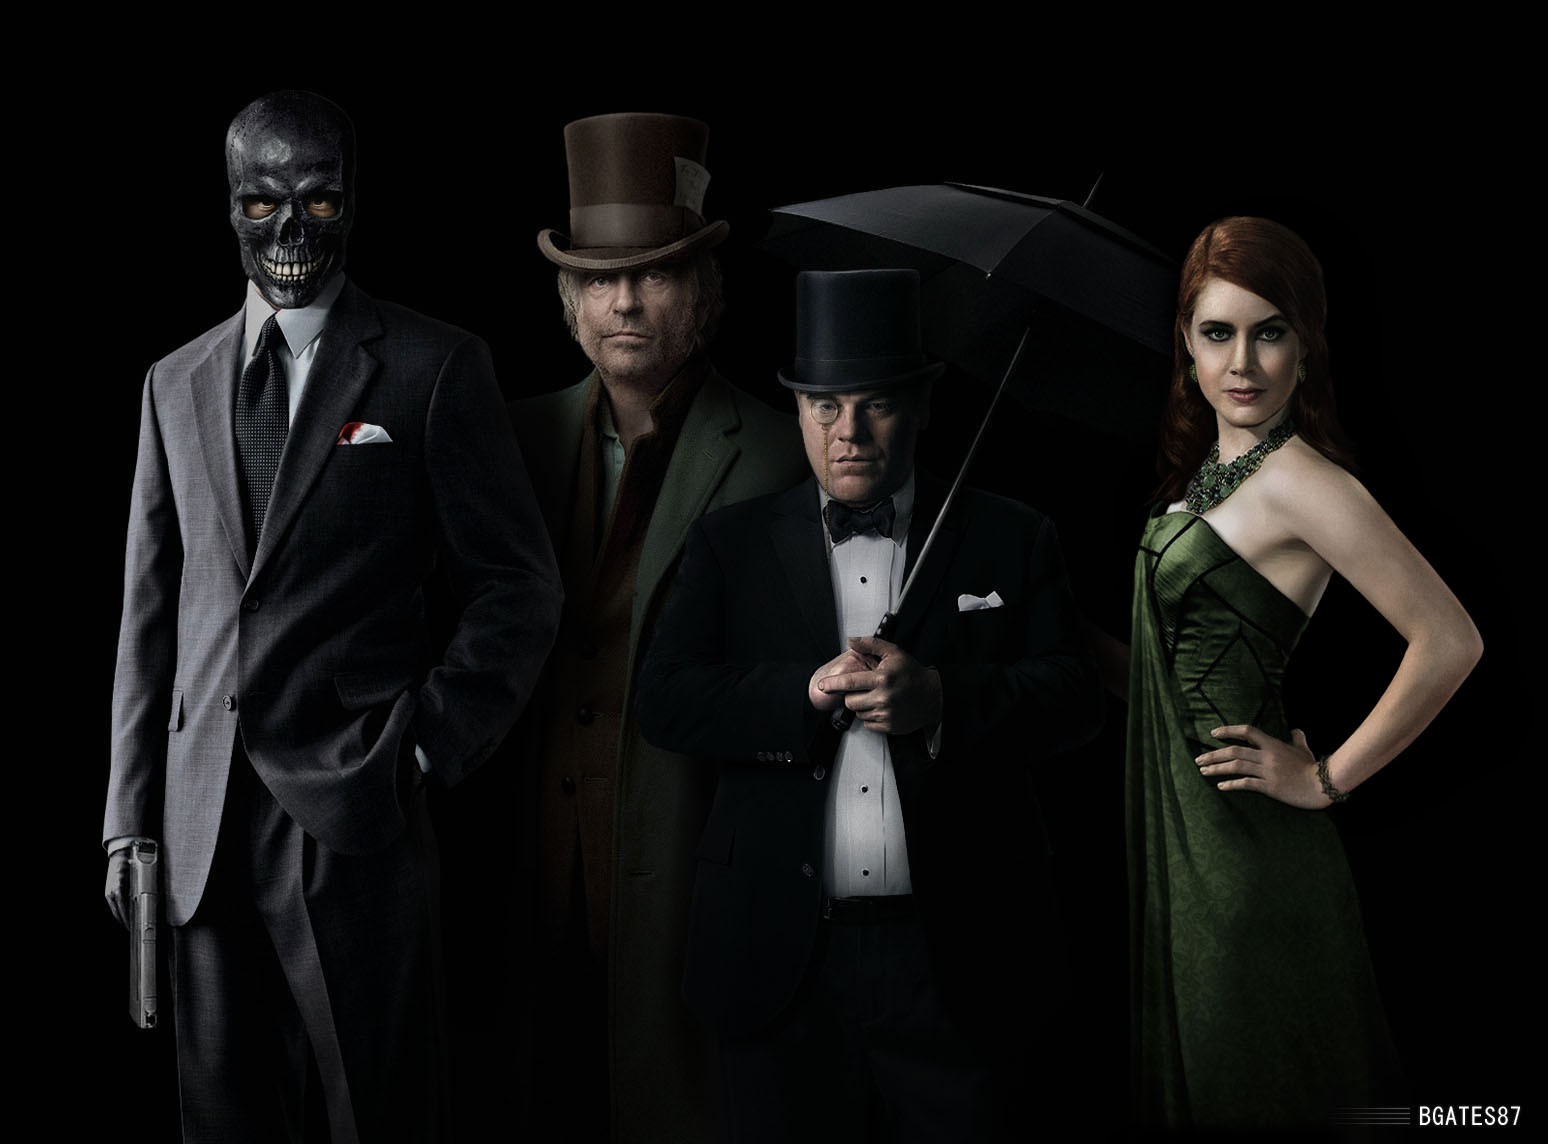 Batman rogues gallery by bgates87 on deviantart for The mask photos gallery